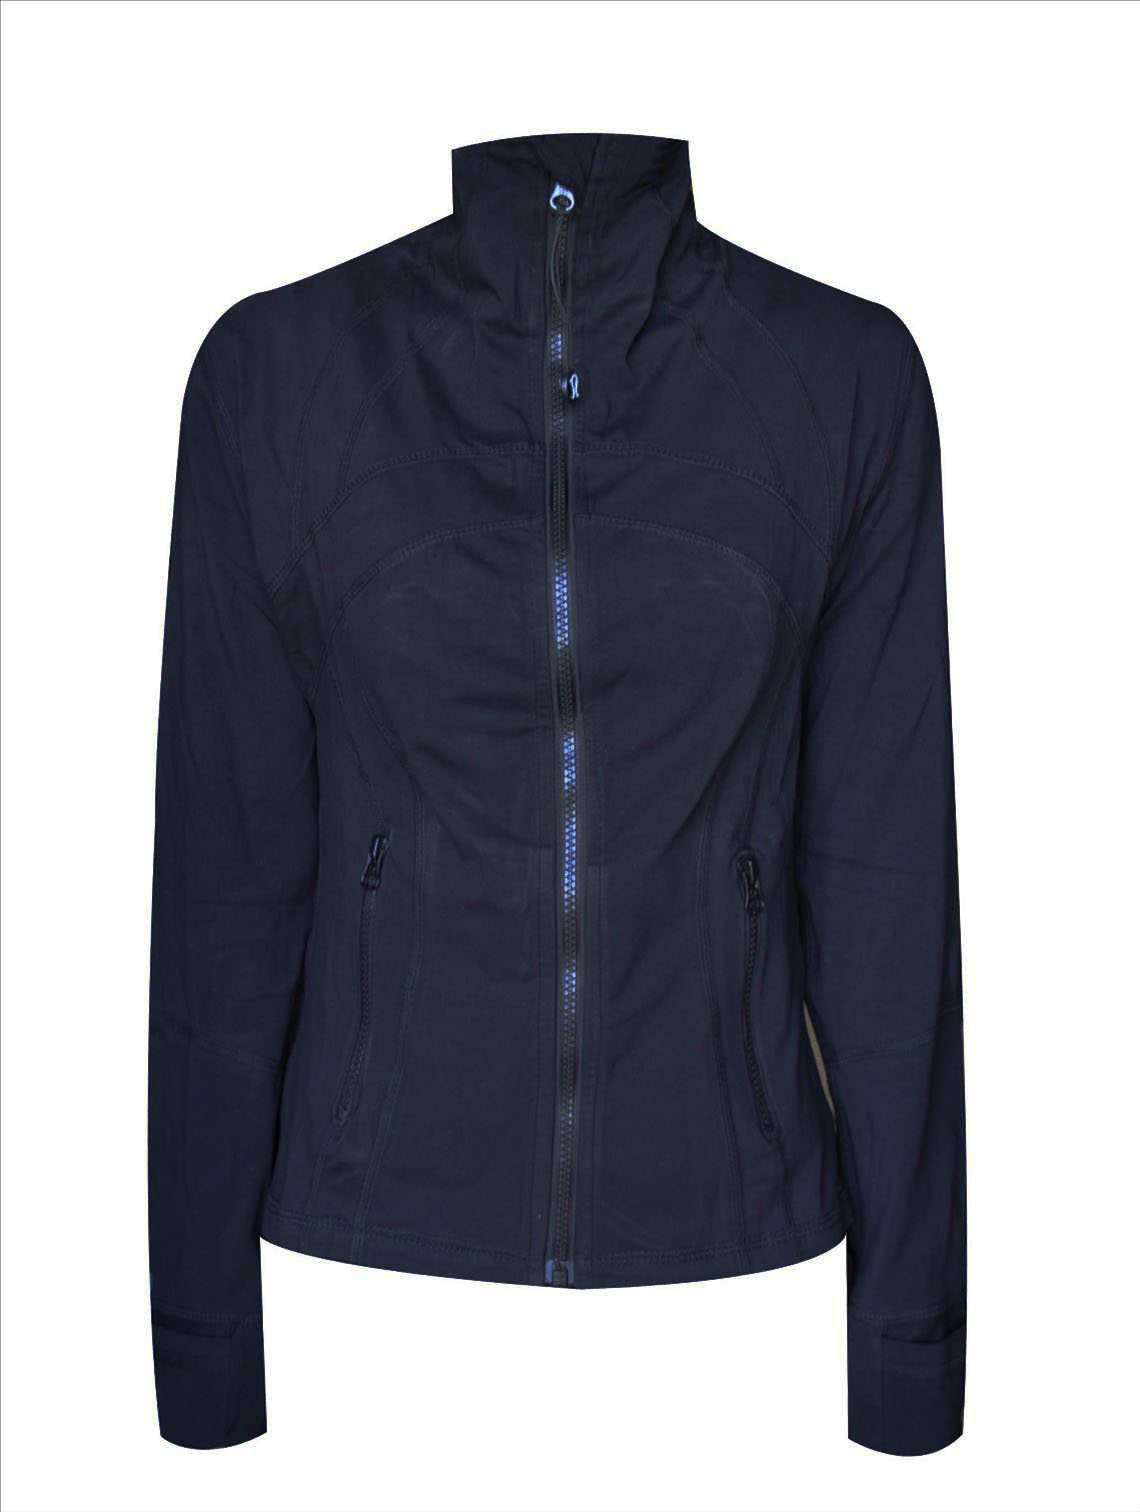 Wholesale Cheap Bench Clothing Get An Impressive Bench Womens Jacket For You This Winter